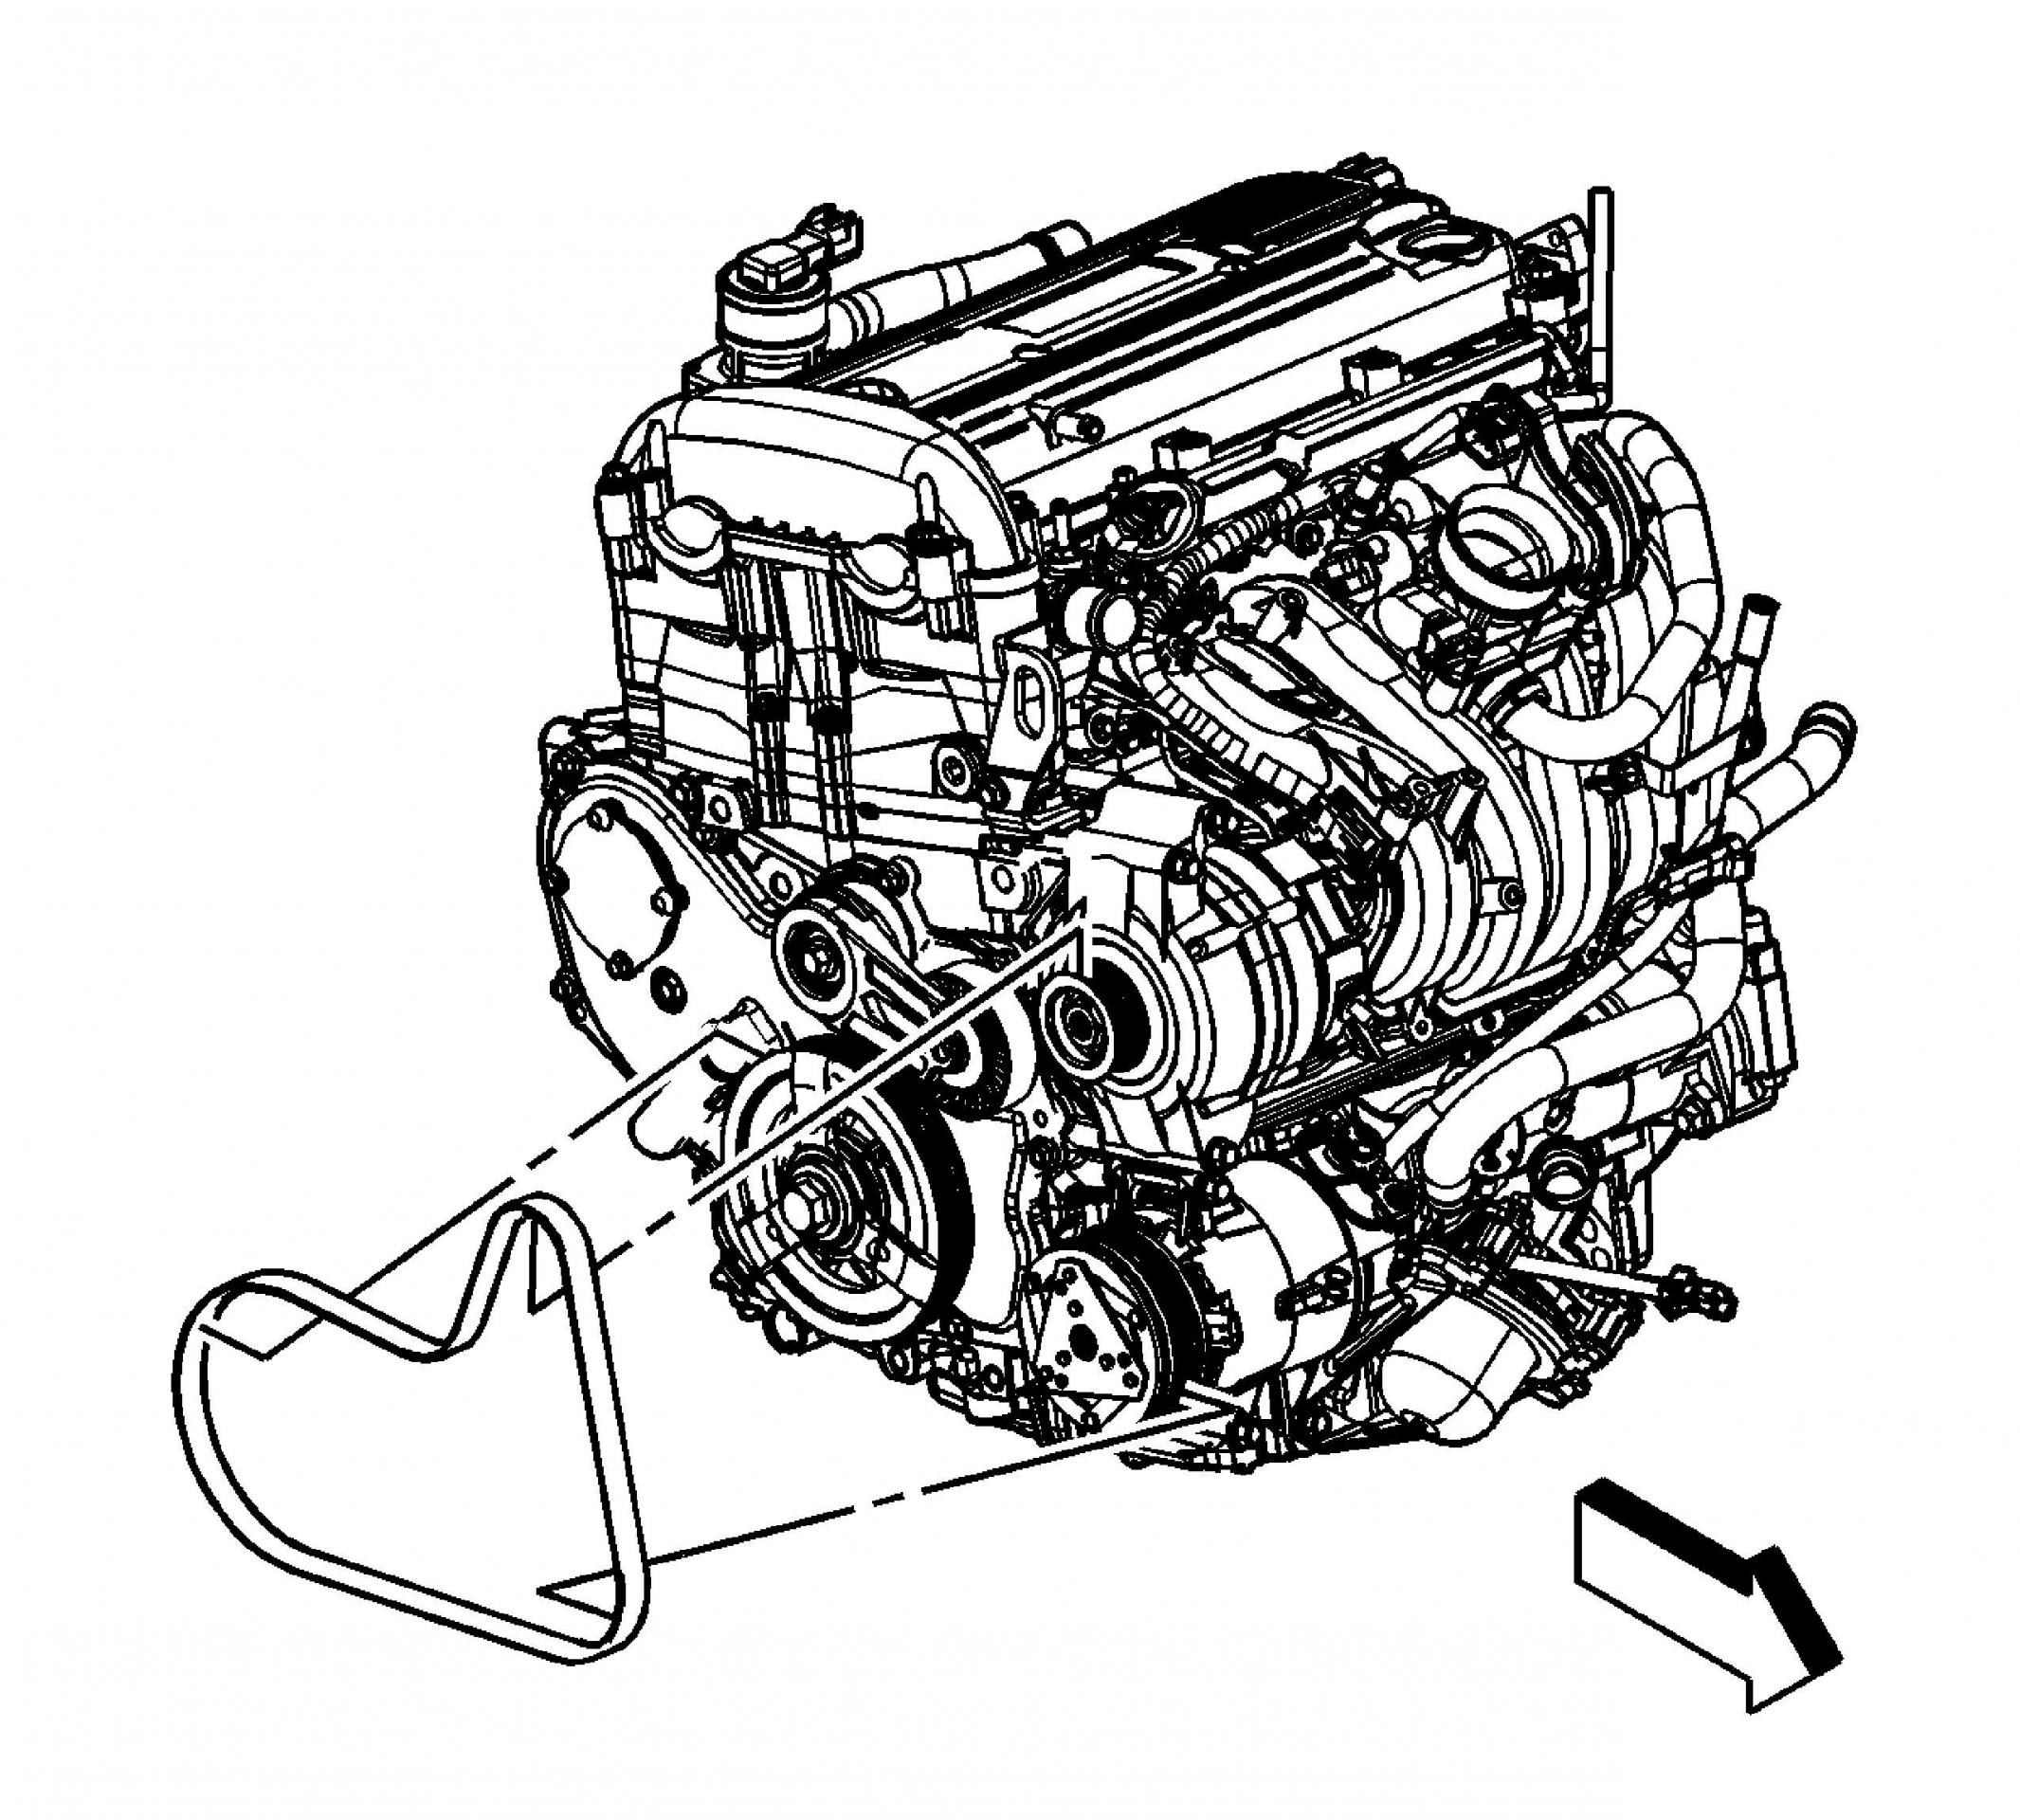 Ford 4 2 V6 Engine Parts Diagram